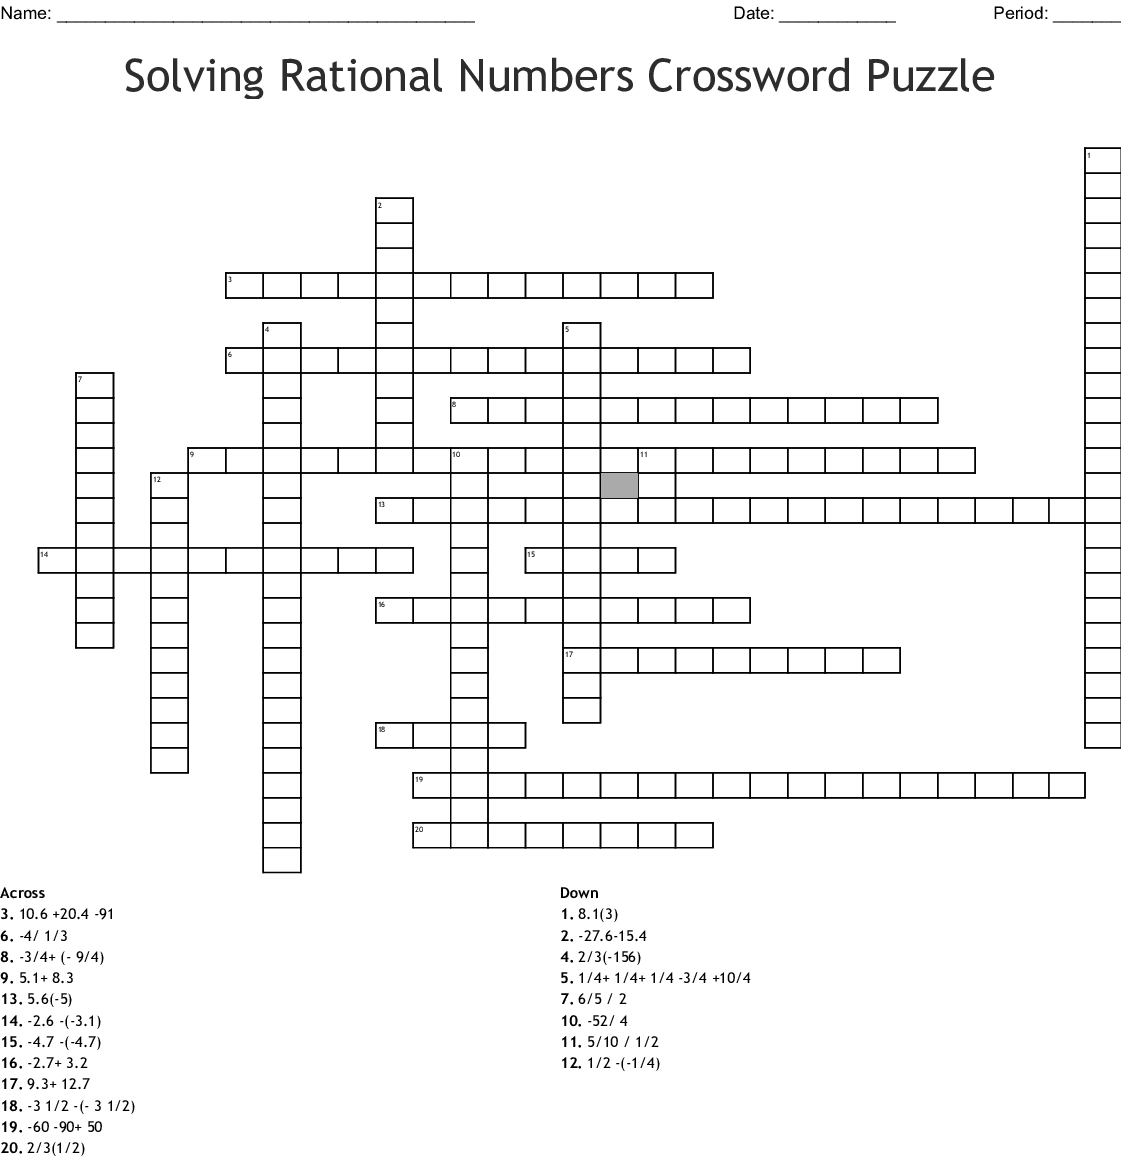 Solving Rational Numbers Crossword Puzzle